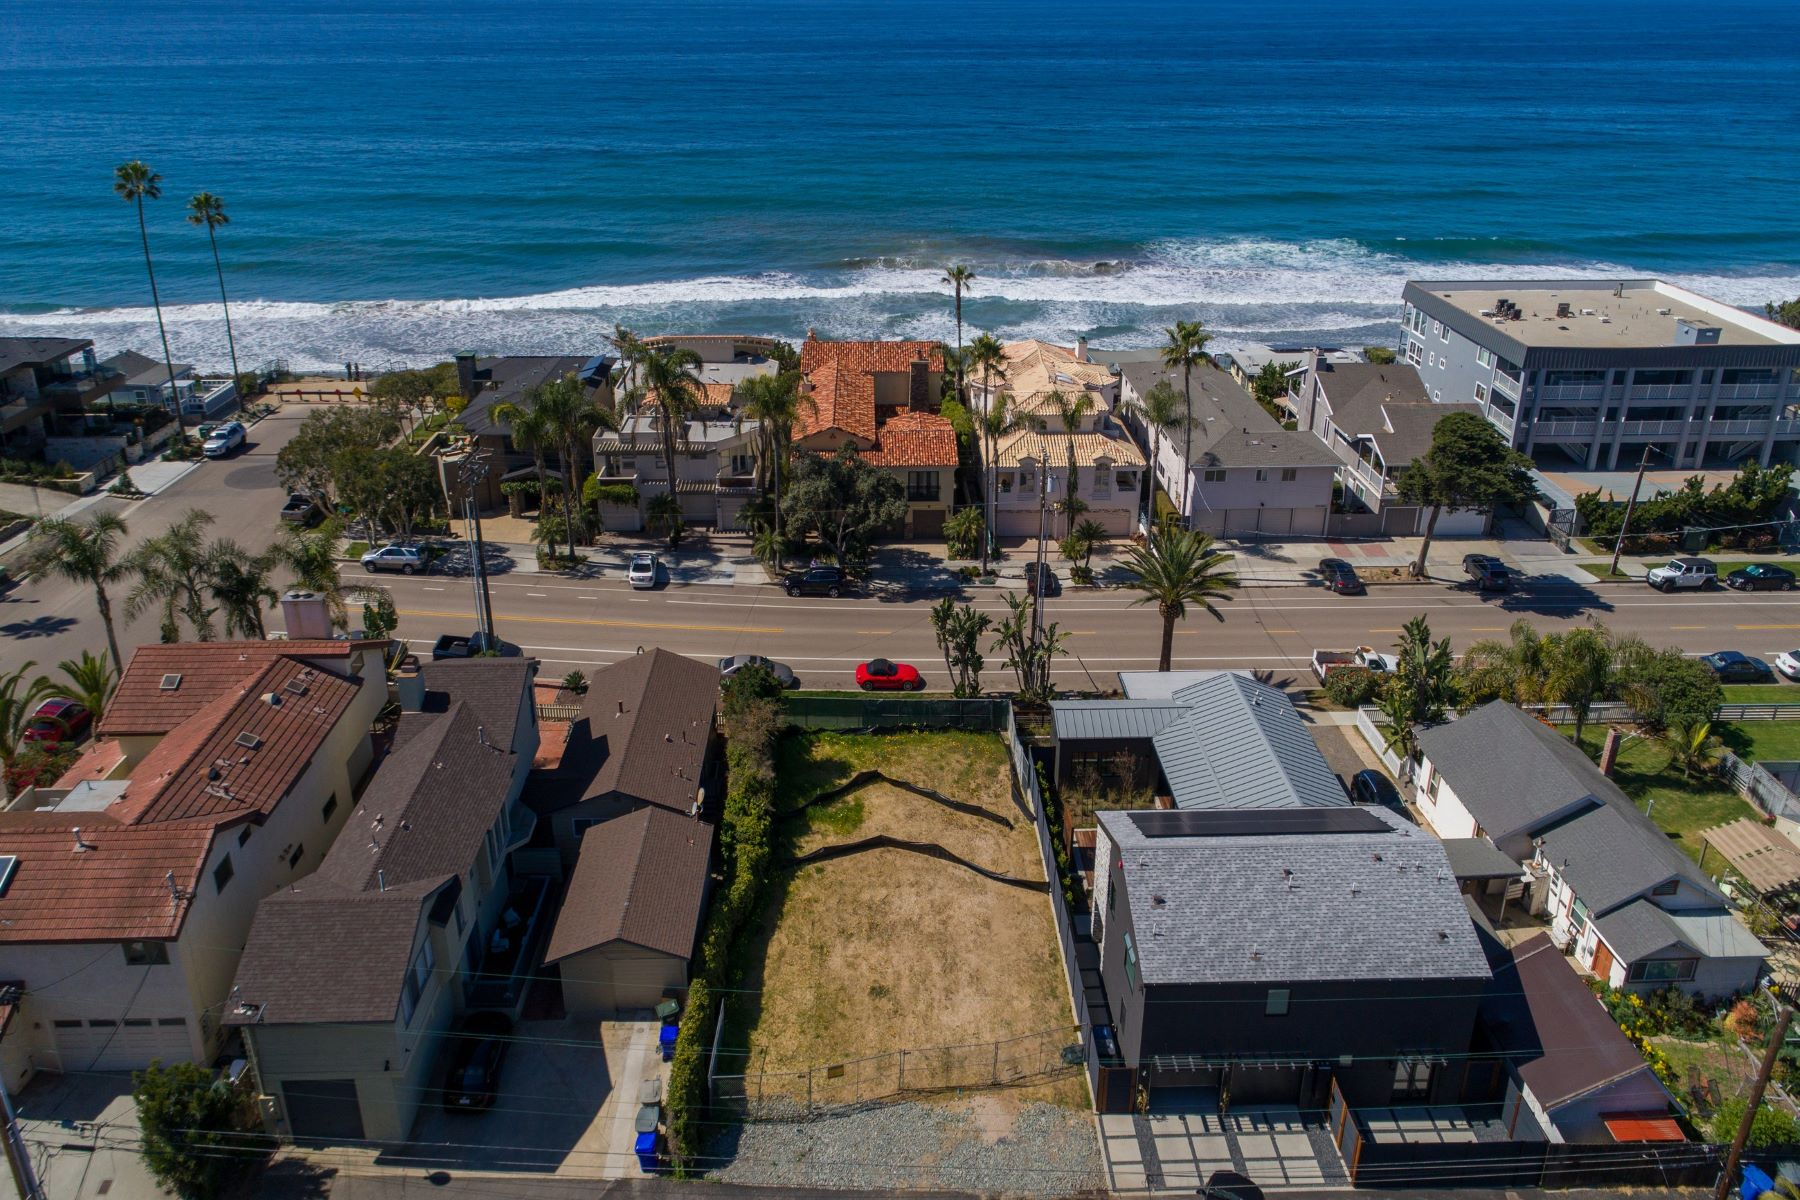 Land for Sale at Beach Lot 541 4th St 11 Encinitas, California 92024 United States